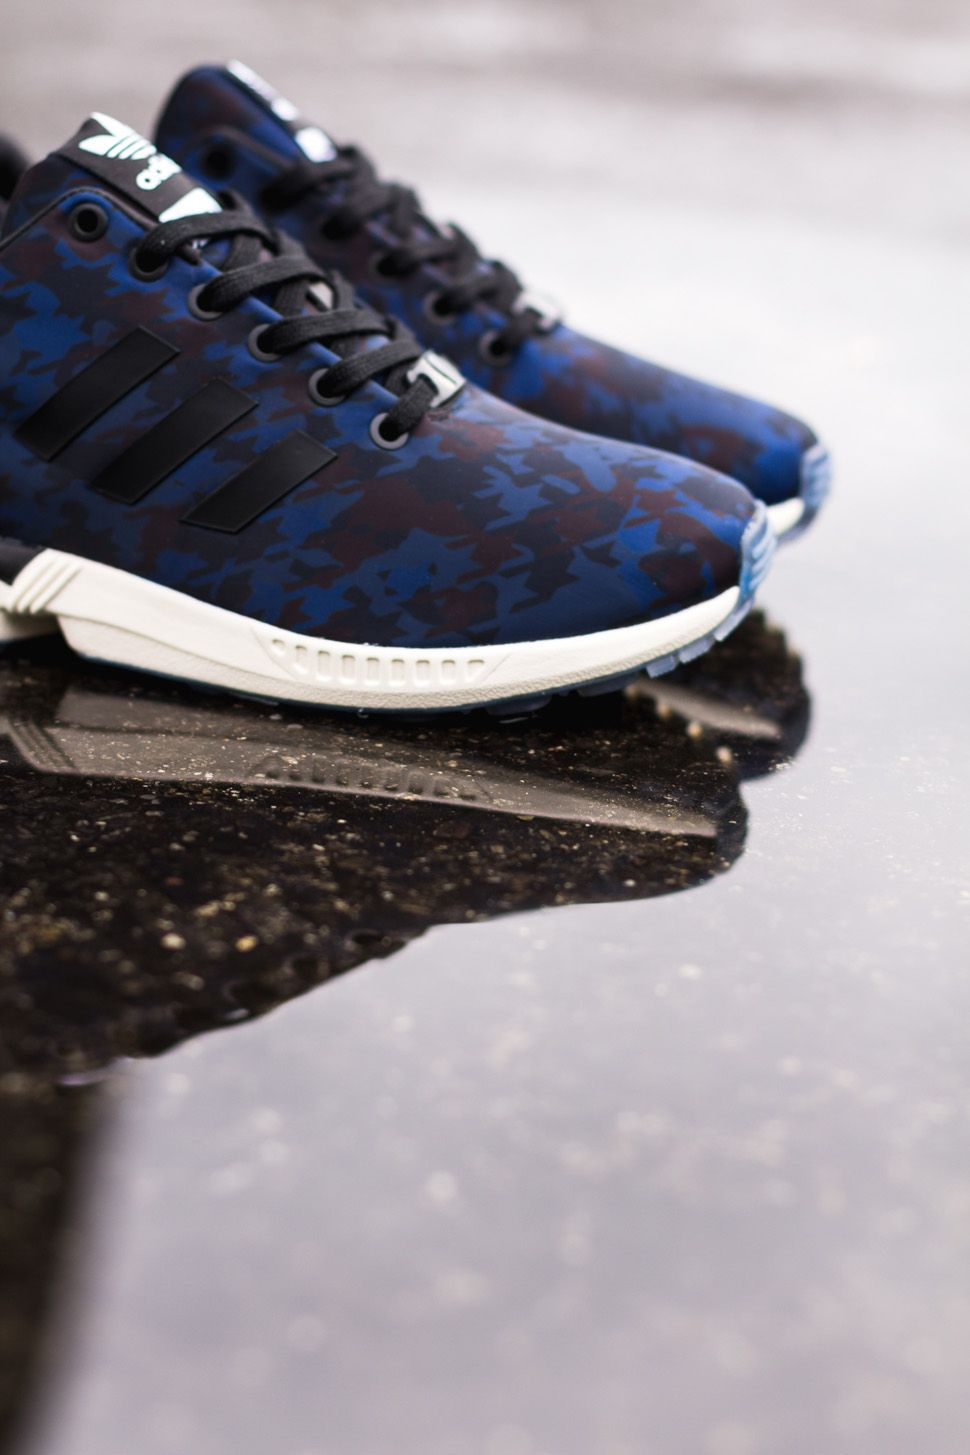 Adidas Zx Flux Weave Men's Running Shoes   Fashion